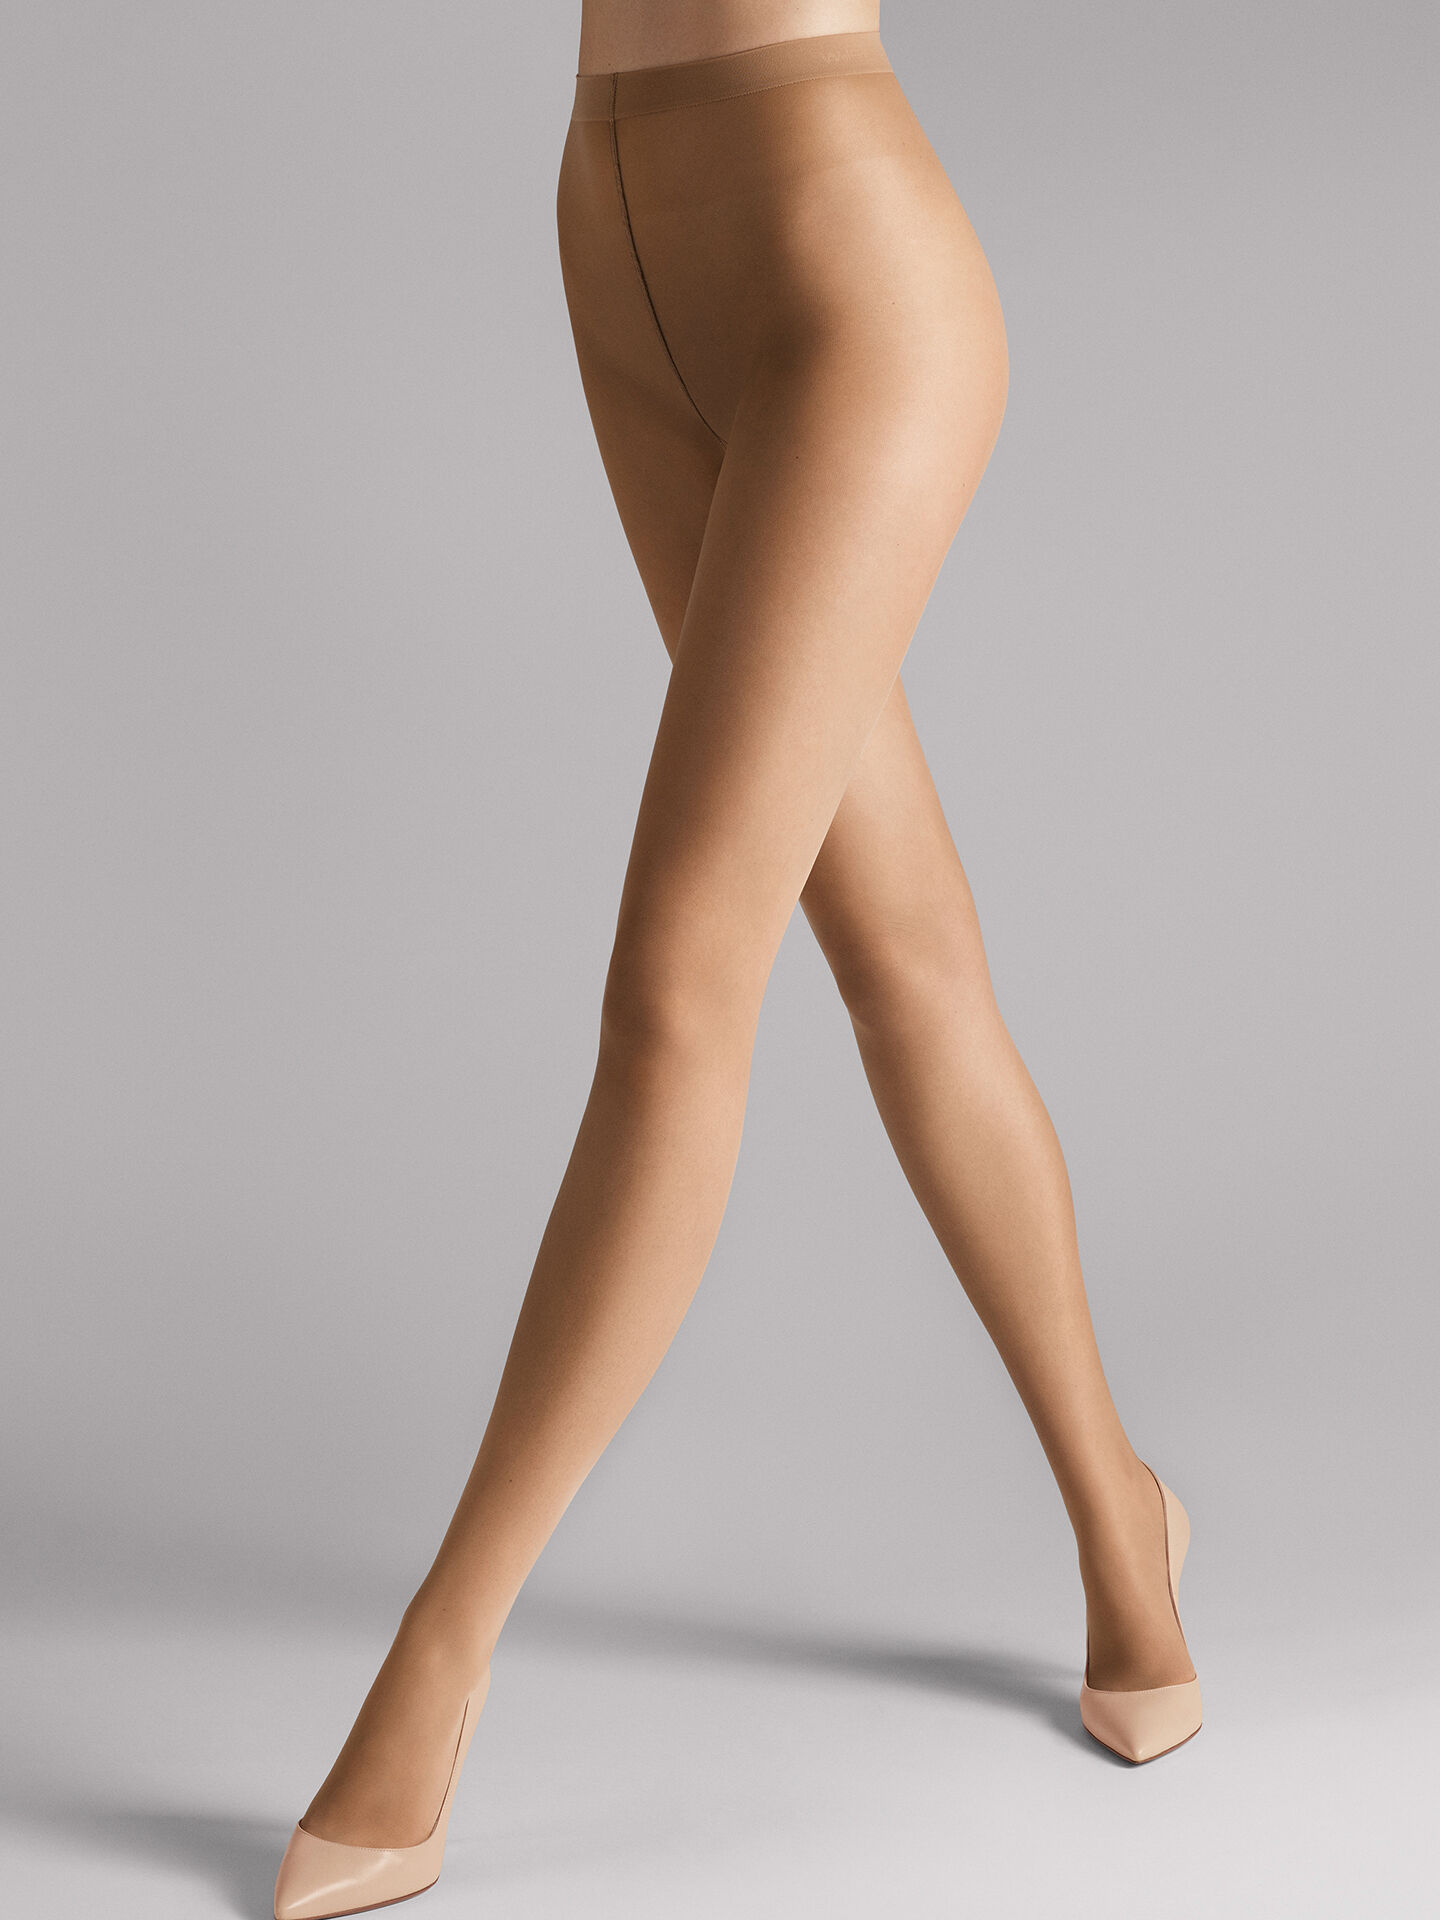 also sheer tights wolford rh wolfordshop